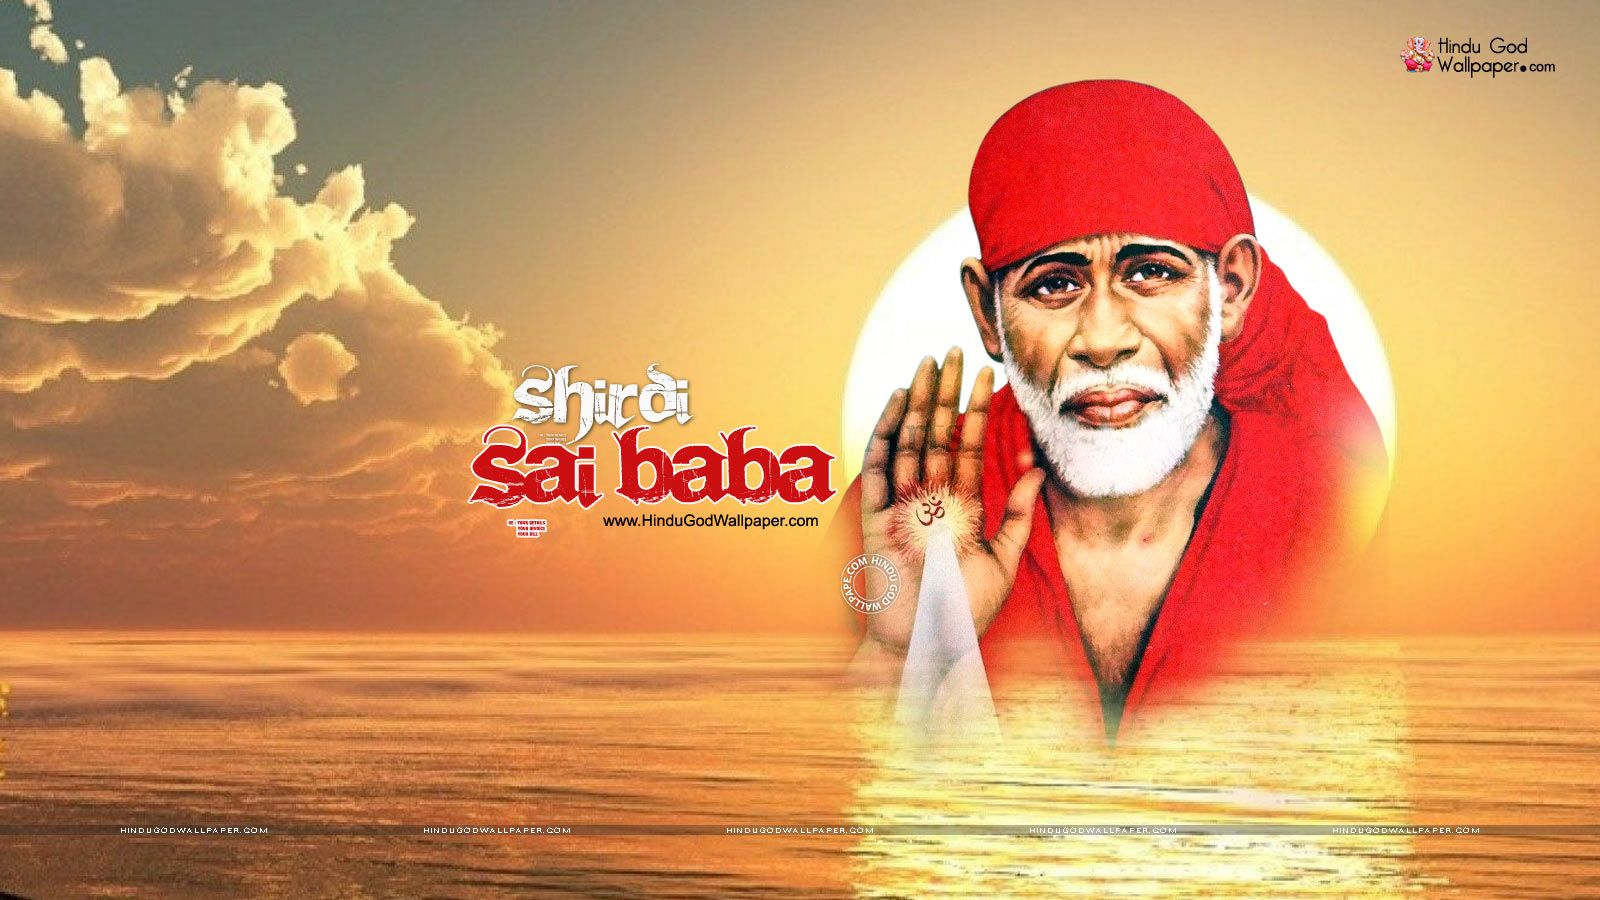 Sai Baba Hd Wallpapers 1600x900 Sai Baba Hd Wallpaper Sai Baba